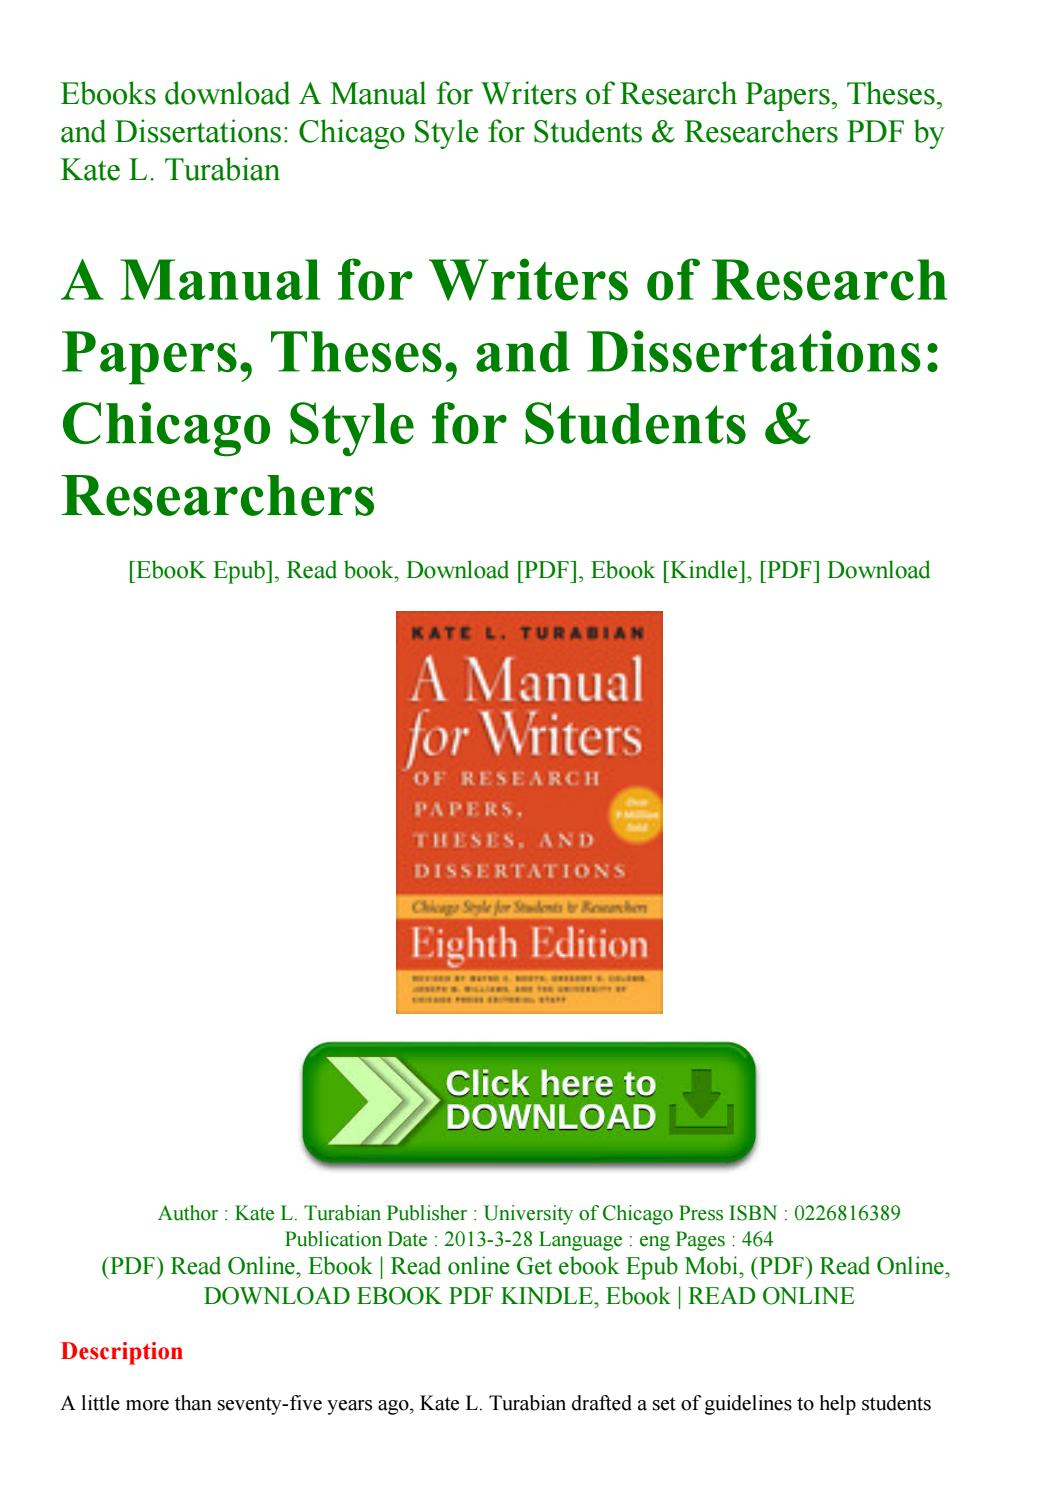 018 Page 1 Research Paper Manual For Writers Of Papers Theses And Sensational A Dissertations Ed. 8 8th Edition Ninth Pdf Full